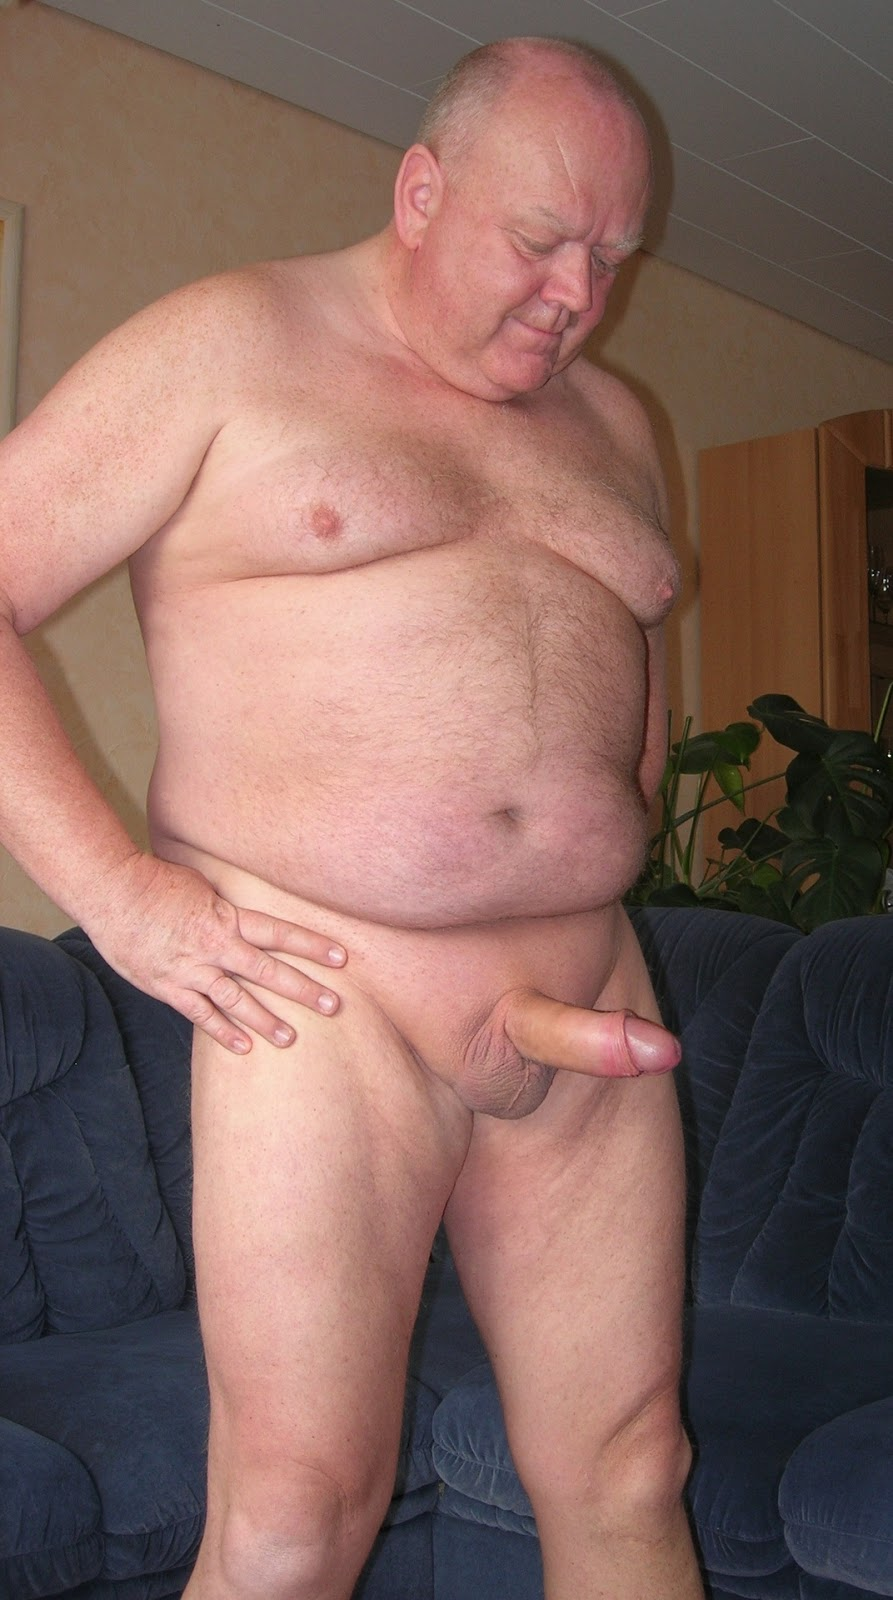 from Omari old naked gay men pic